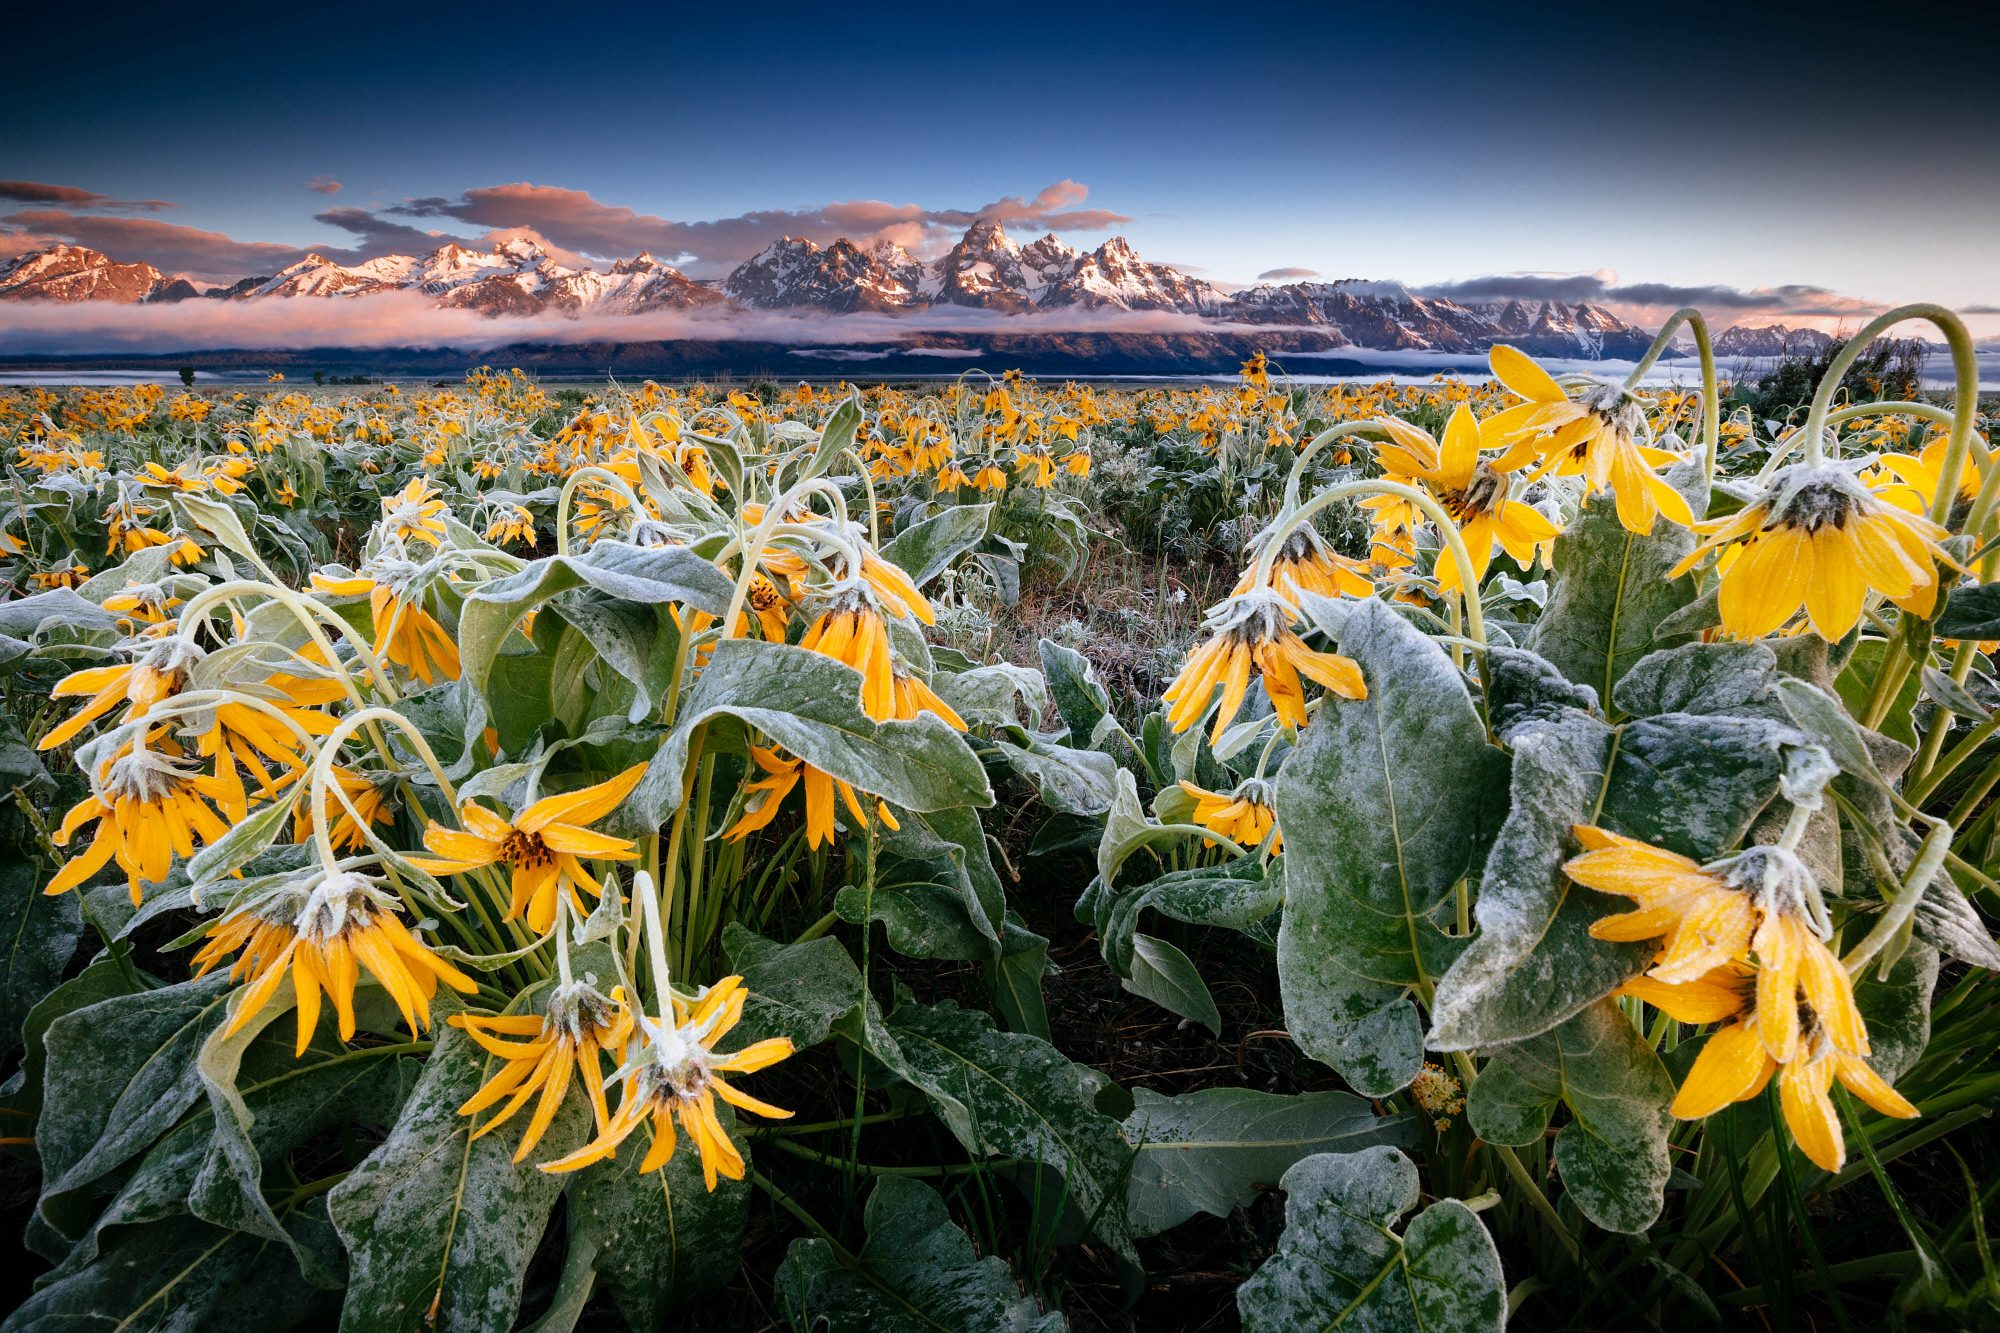 Sunrise and Arrowleaf Balsamroot over the Tetons by Jay Goodrich